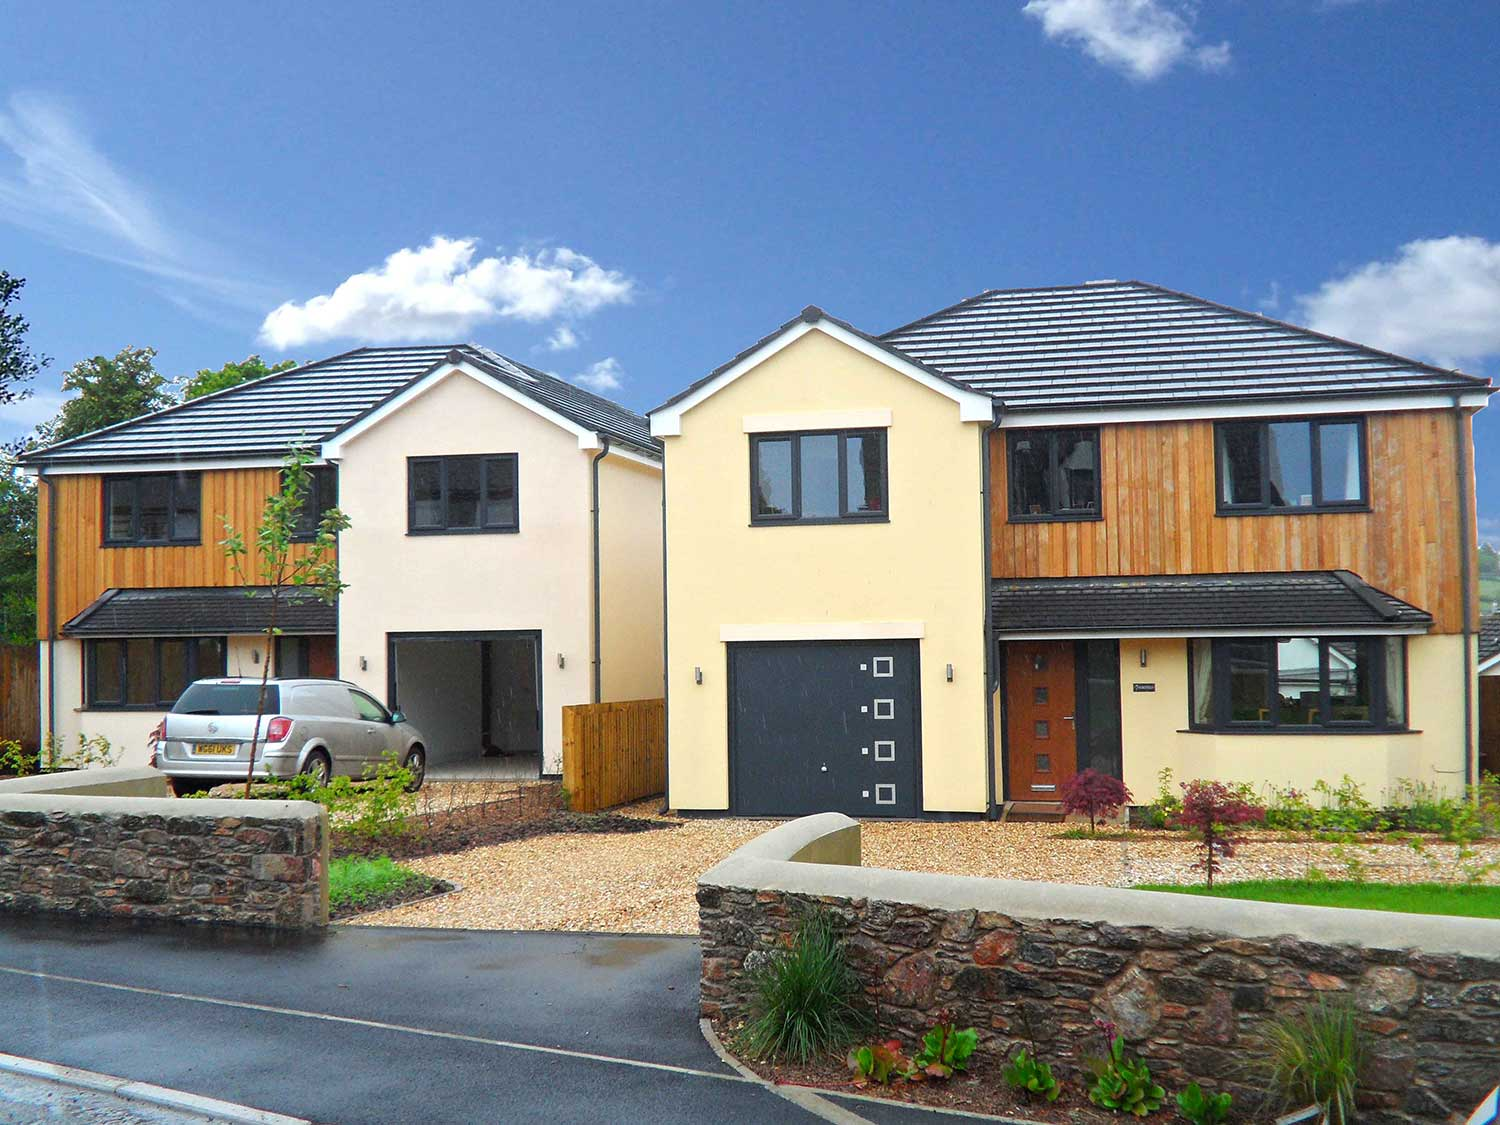 Wetherby Building Systems Ltd Insulated Render Decorative Facades And Render Only System